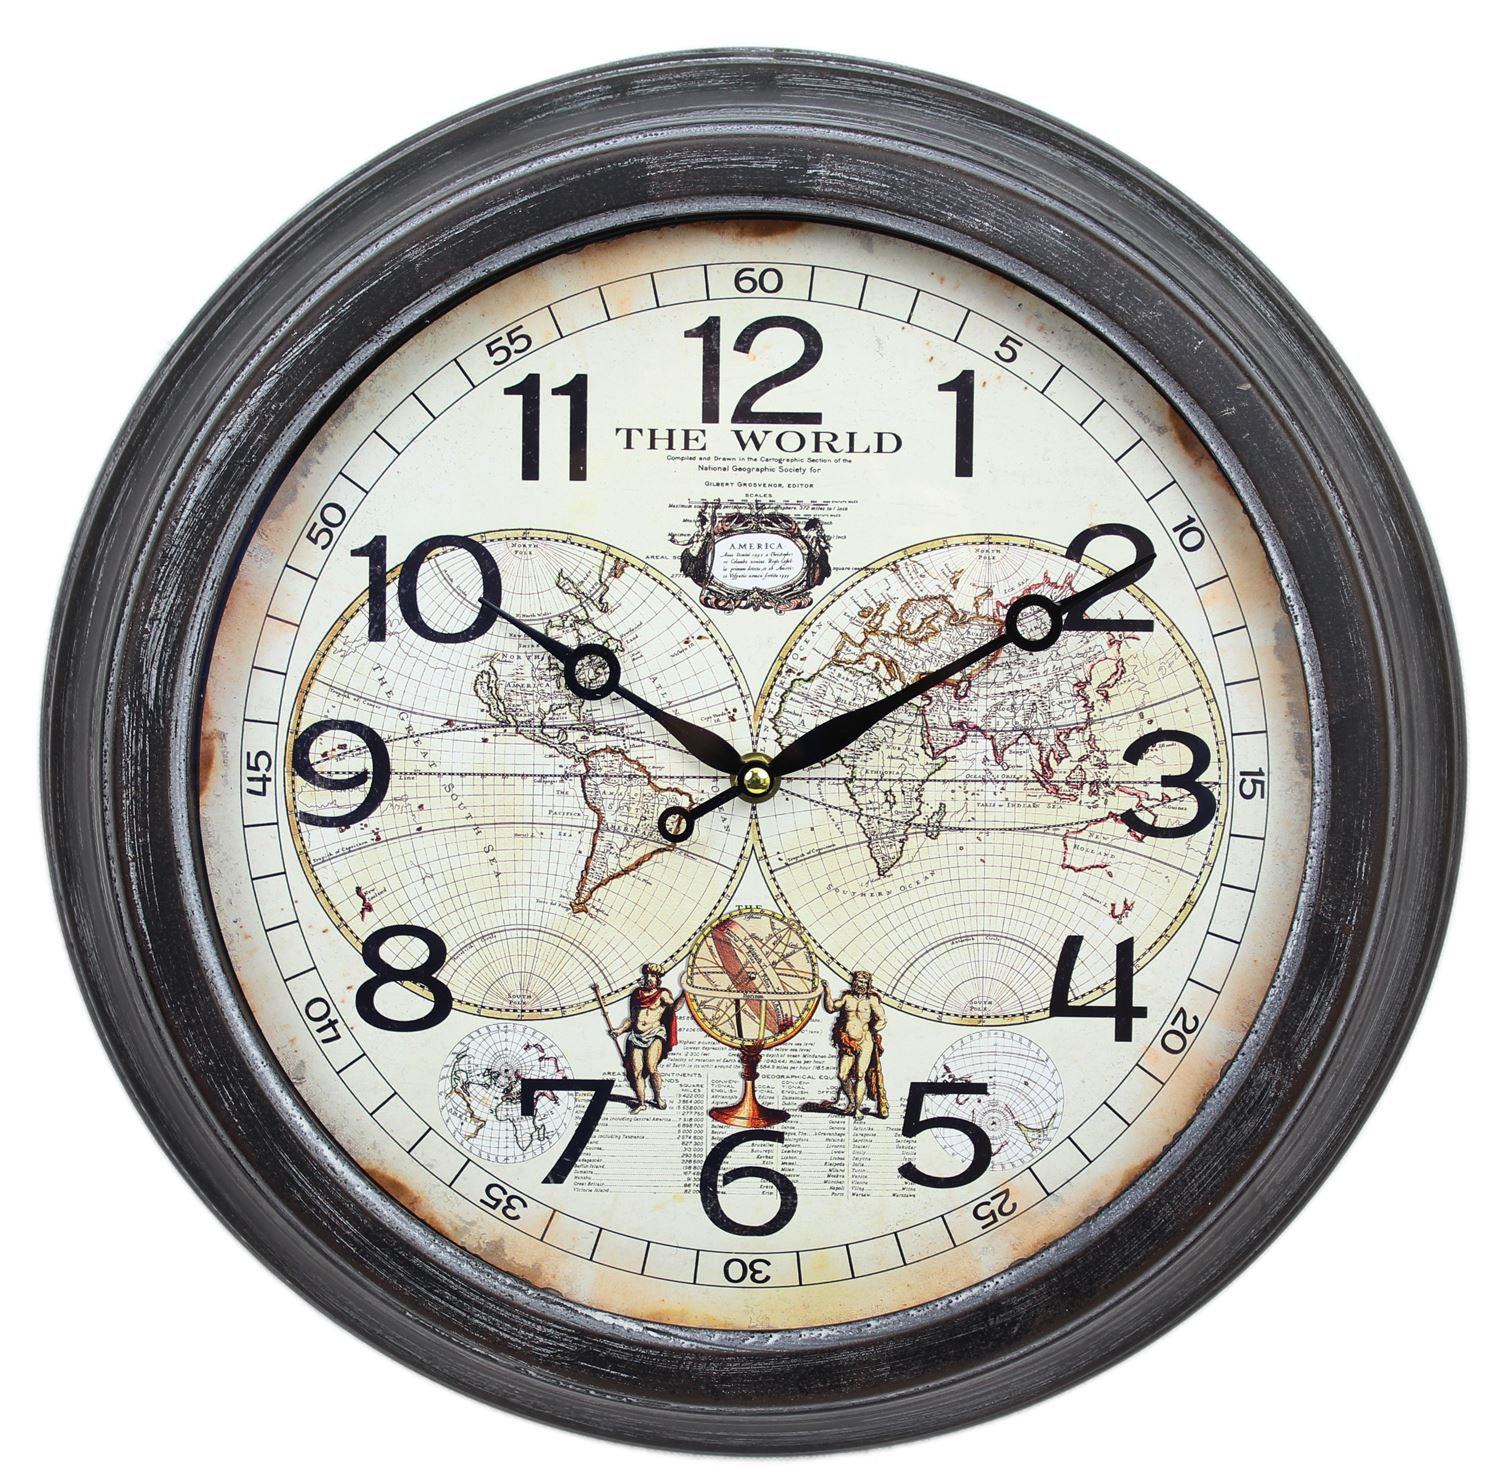 Hanging globe world map wall clock 41cm 5024418166238 ebay the map clock face is printed and is set within a distressed brown metal casing fabulous for anyone with a love of travelling or those that like something gumiabroncs